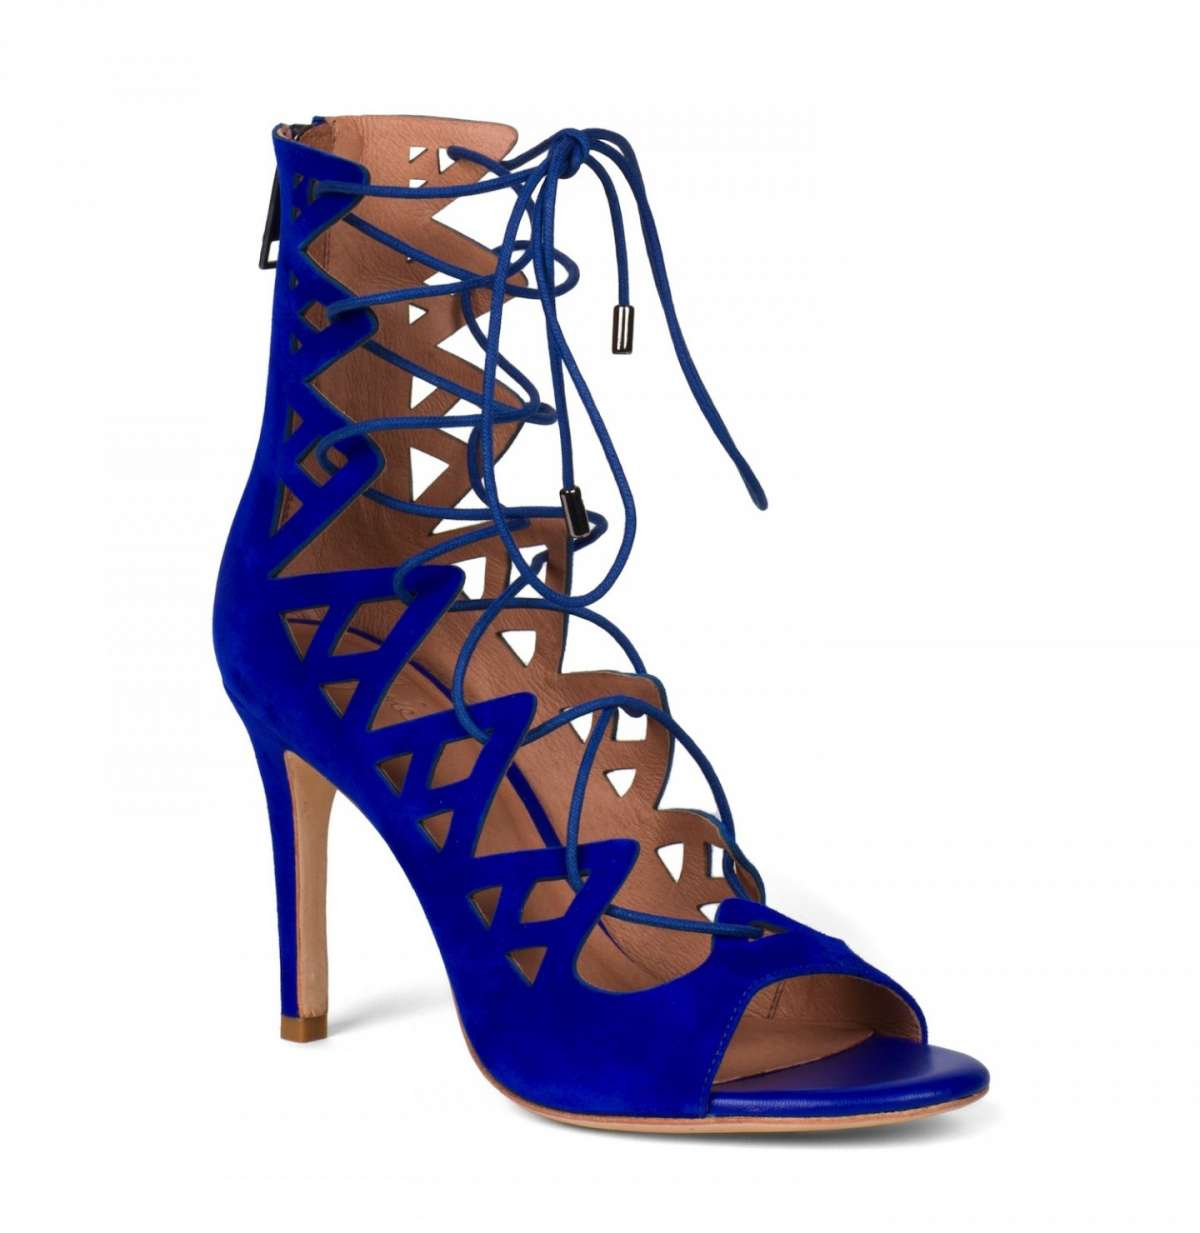 Sandali lace up blu con tacco